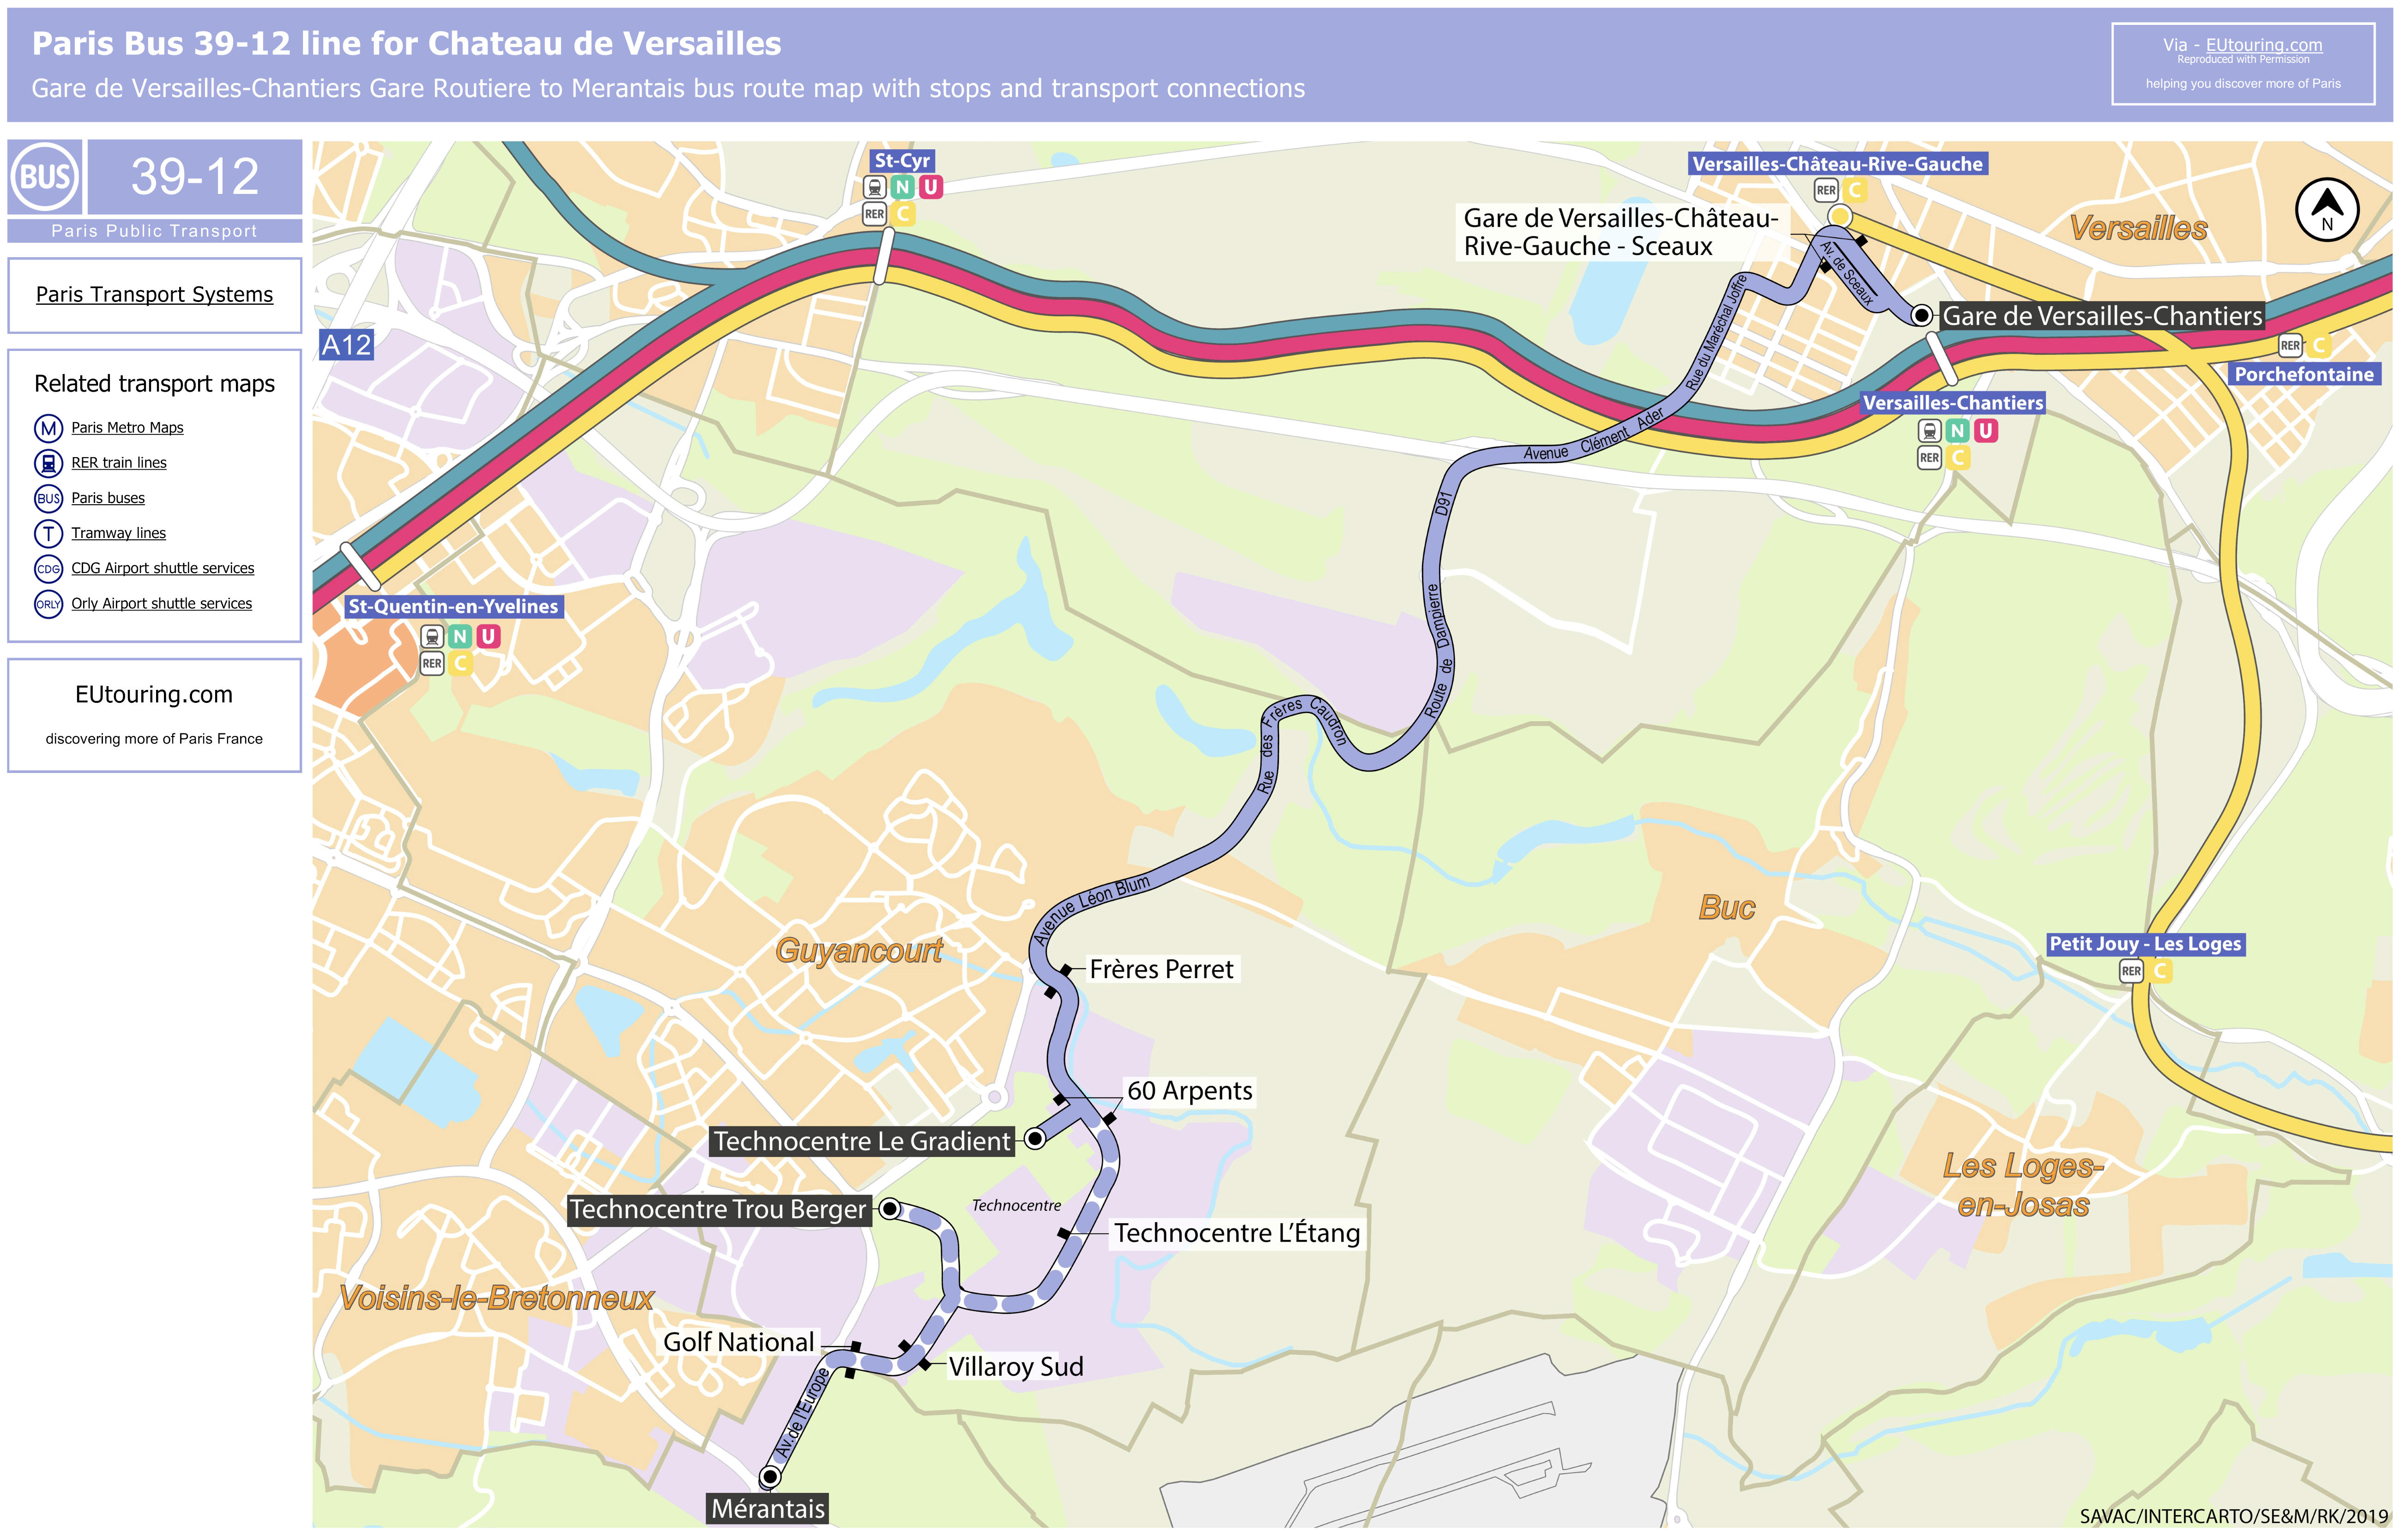 Image of: Paris Bus Maps And Timetables For Bus Lines 30 To 39